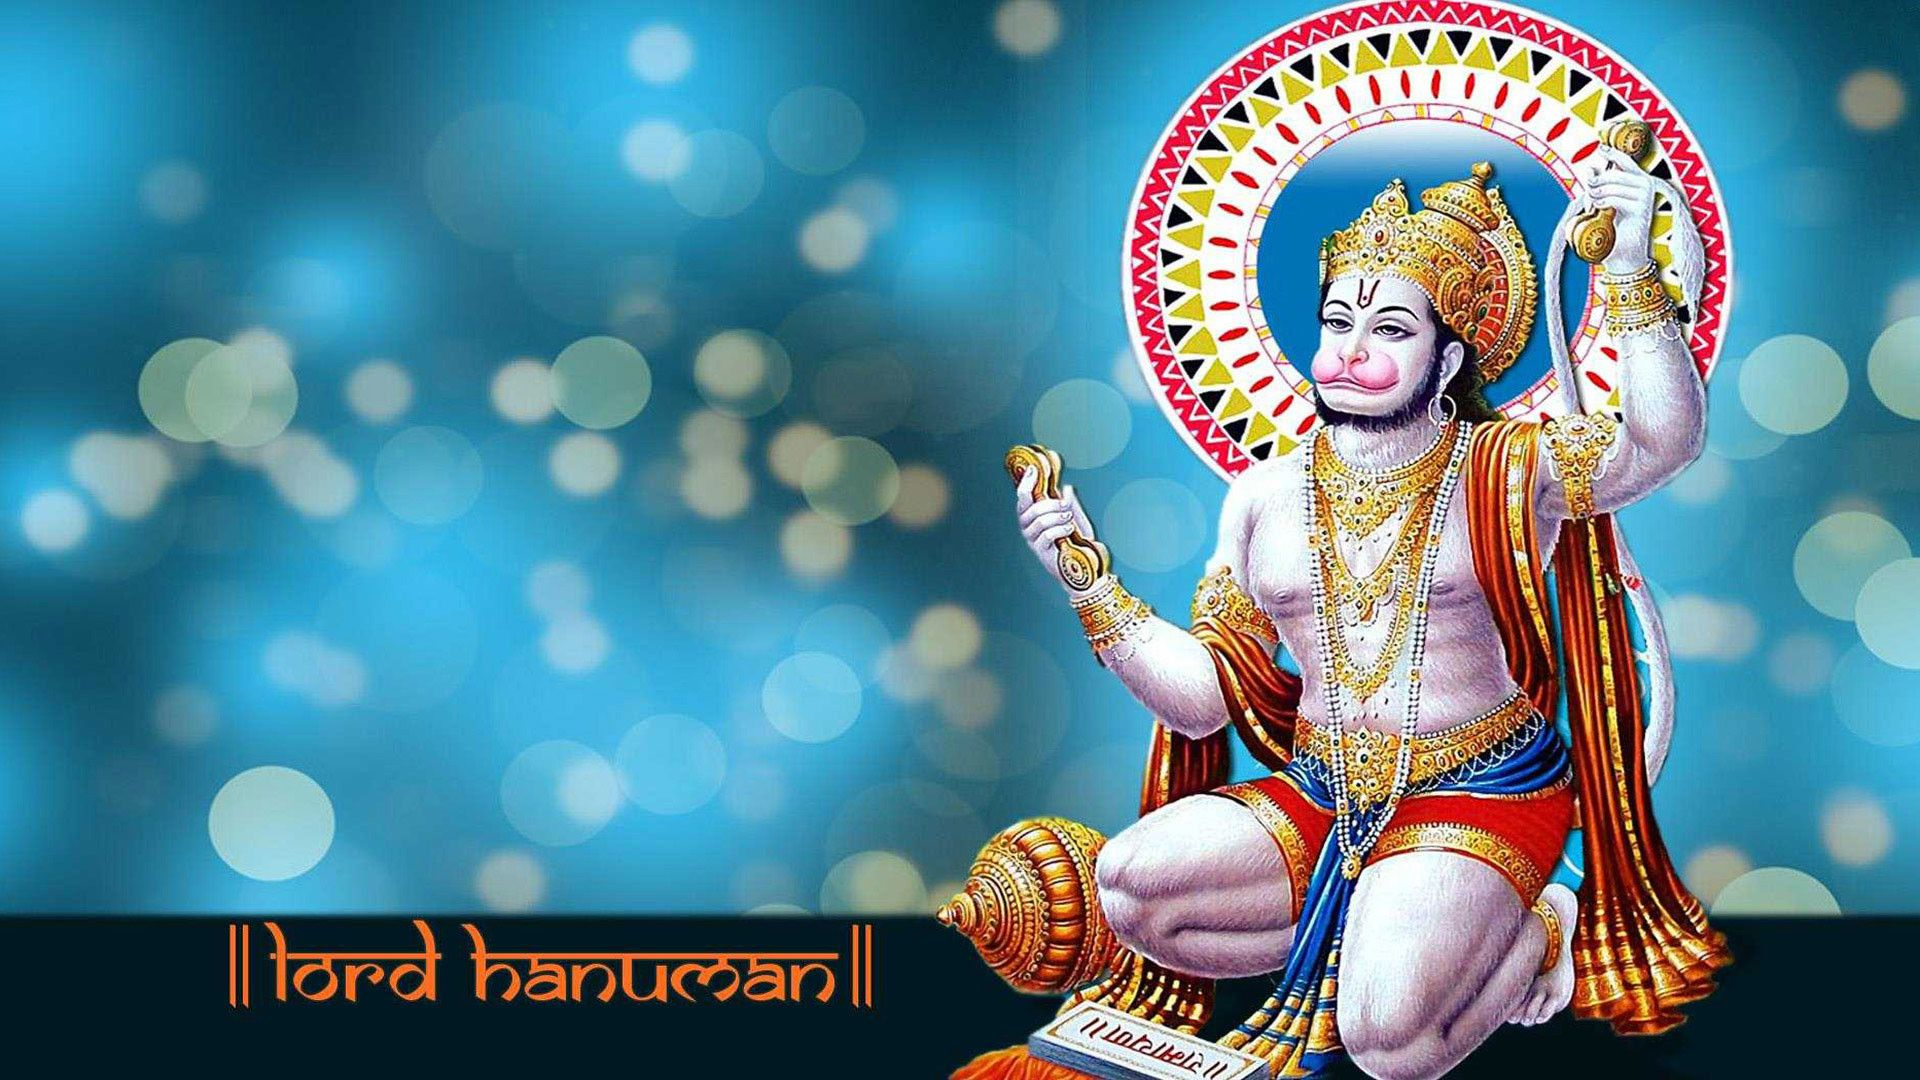 1920x1080 Hd Pics Photos Gods Hindu Lord Hanuman New Desktop Background Wallpaper Hanuman Wallpaper Hanuman Hd Wallpaper Happy Hanuman Jayanti